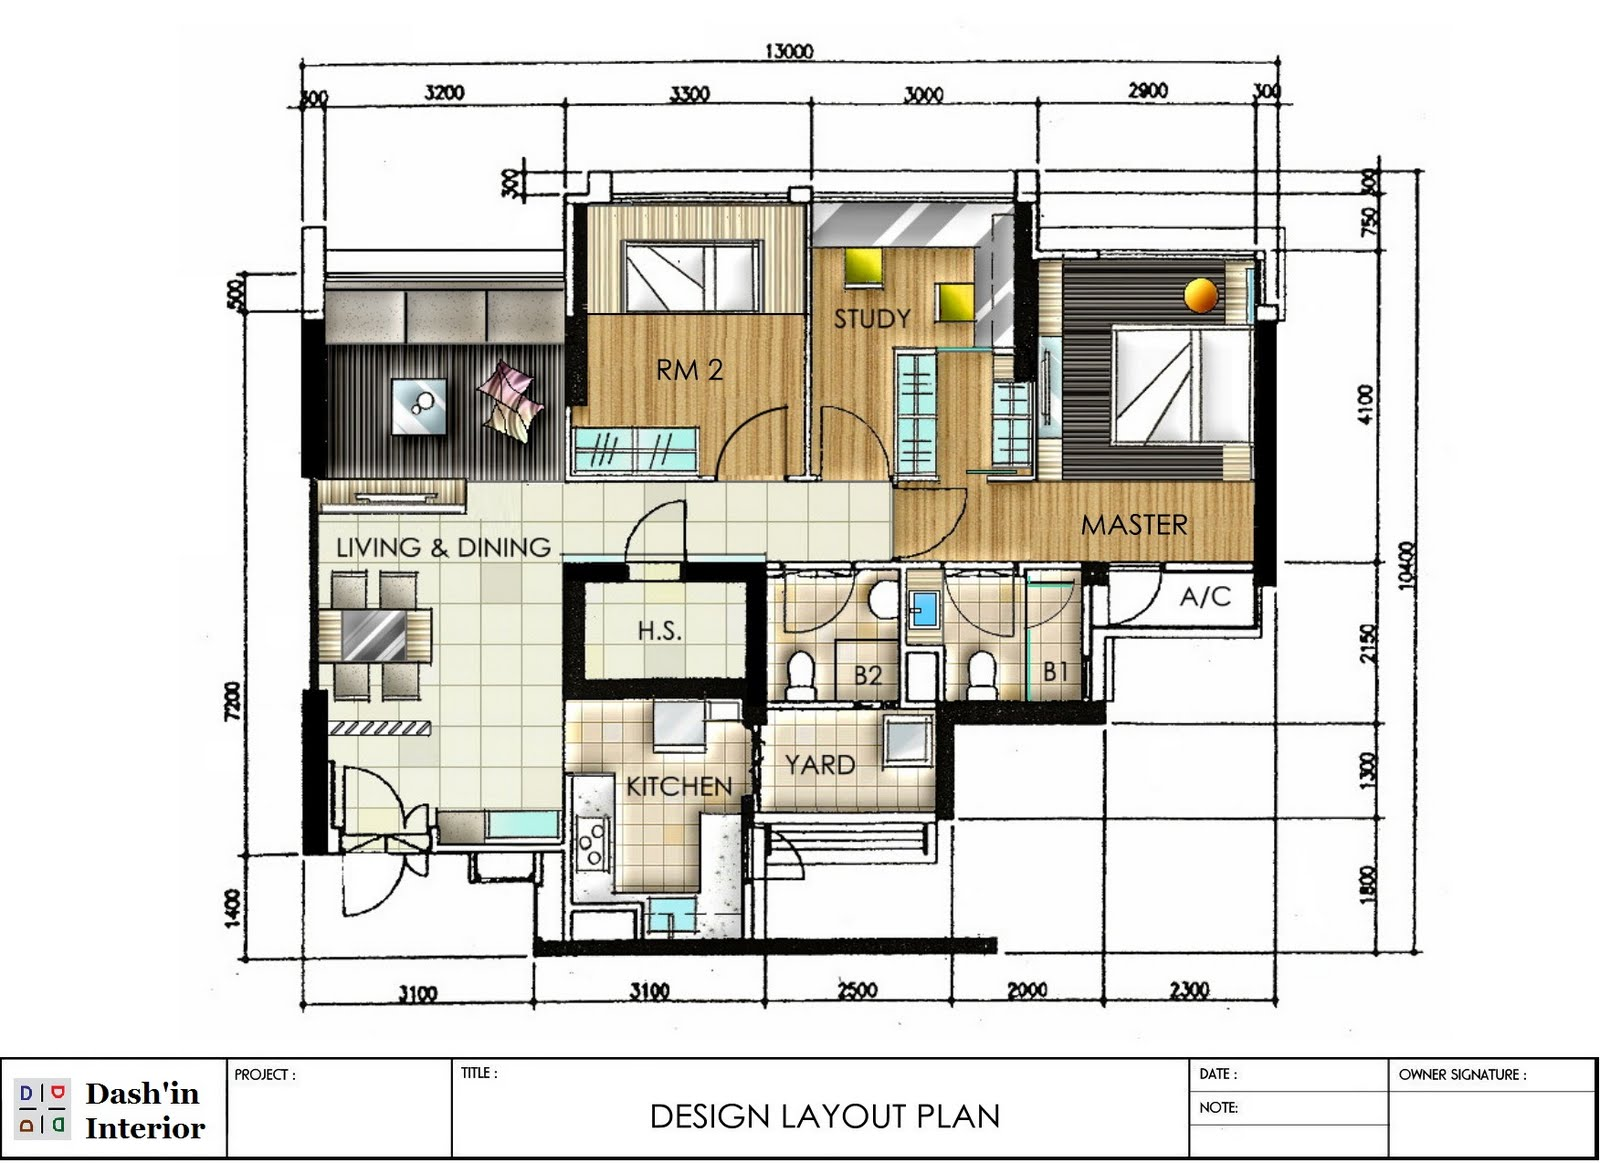 Dash 39 in interior hand drawn designs floor plan layout for Planning a kitchen layout